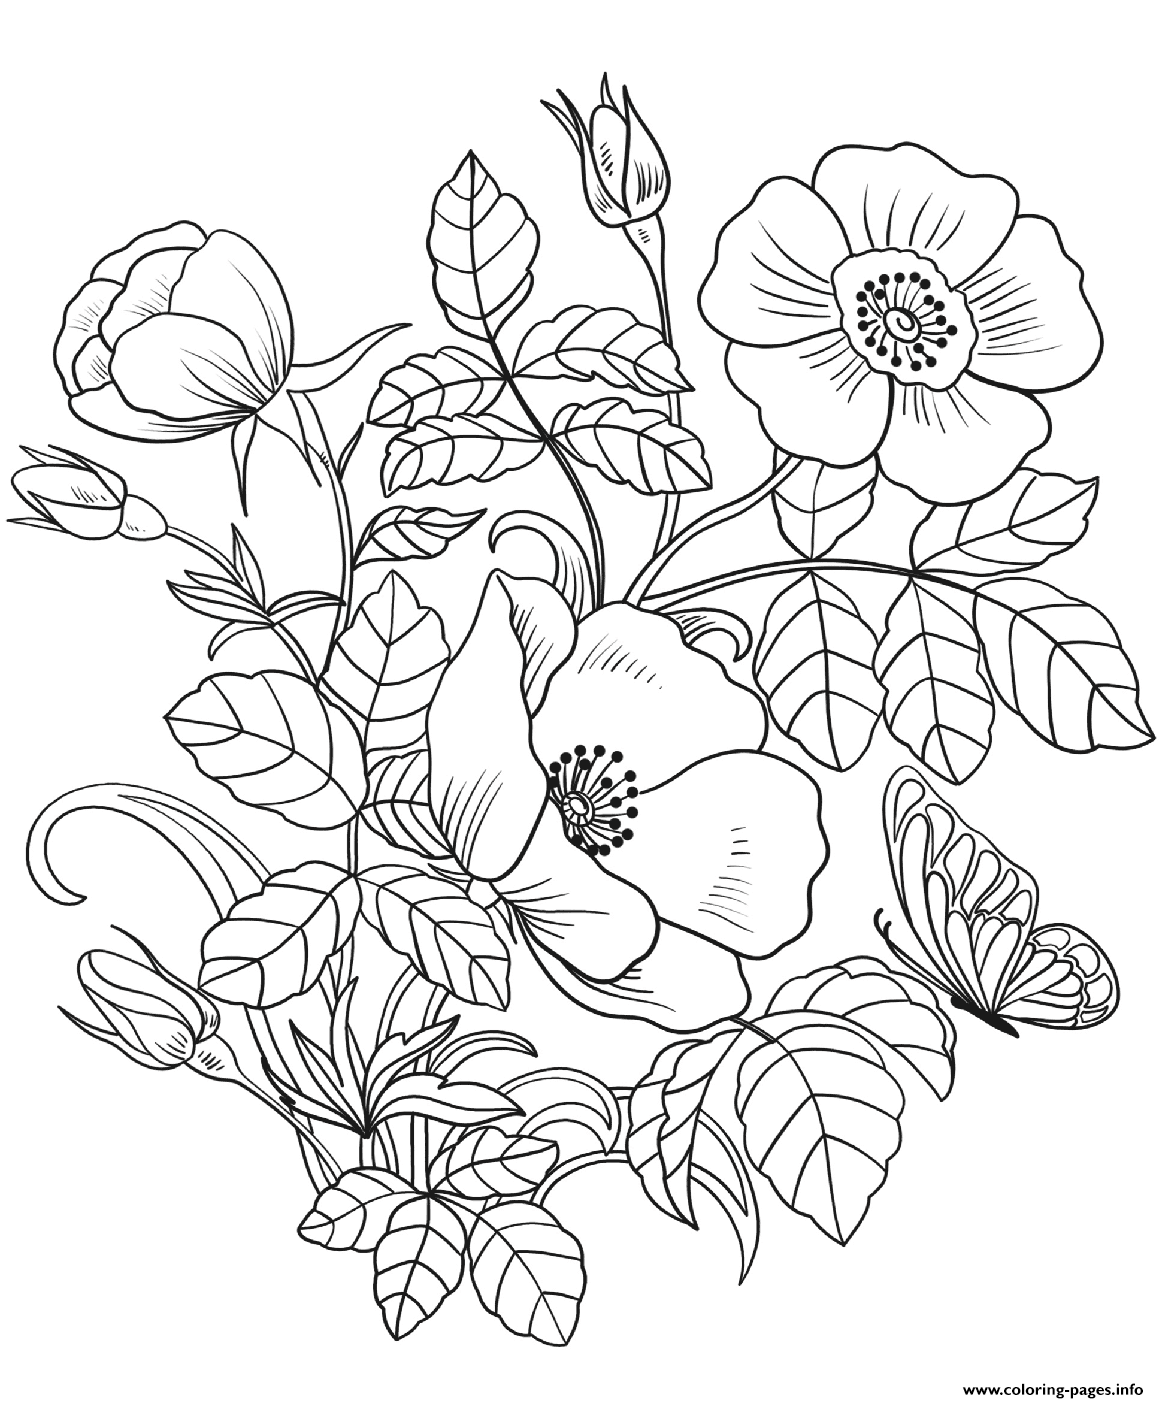 coloring pics of flowers coloring pages colouring of flowers in flower coloring pics coloring of flowers